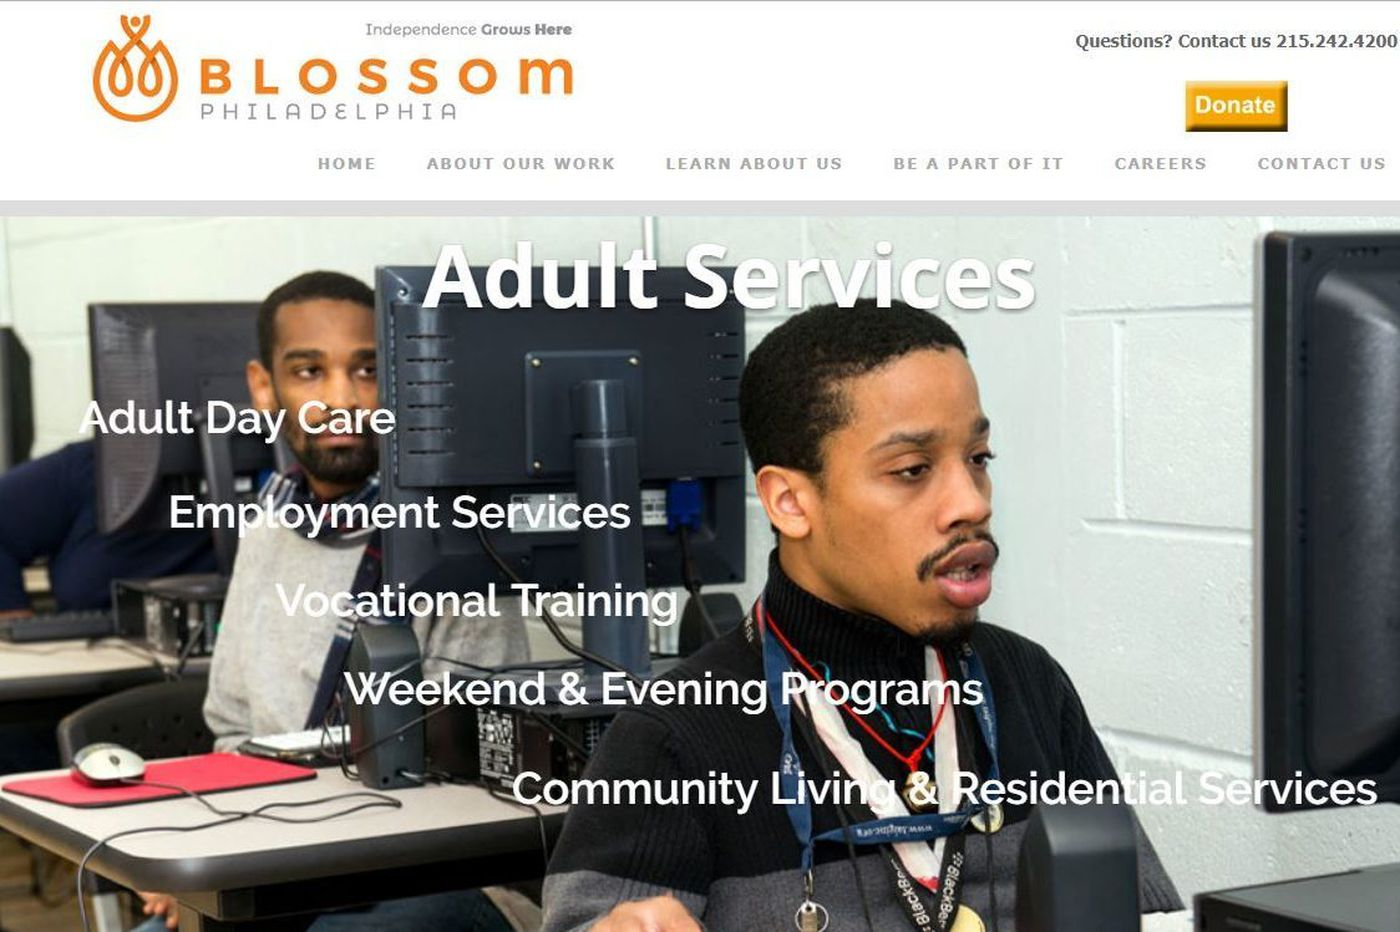 Blossom Philadelphia substitute providers in talks with state